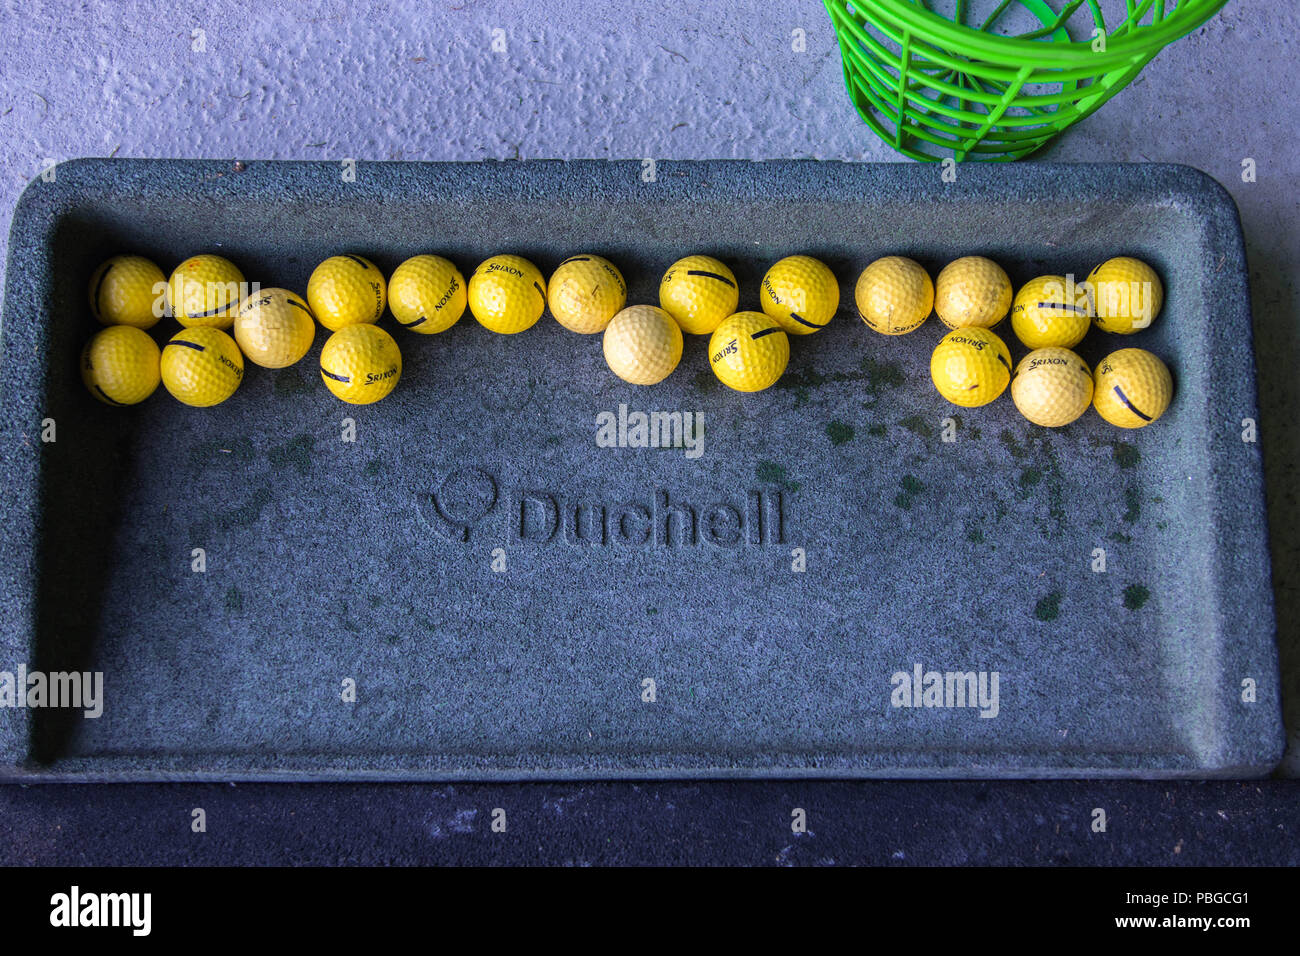 Duchell golf ball tray with srixon yellow golf ball - Stock Image